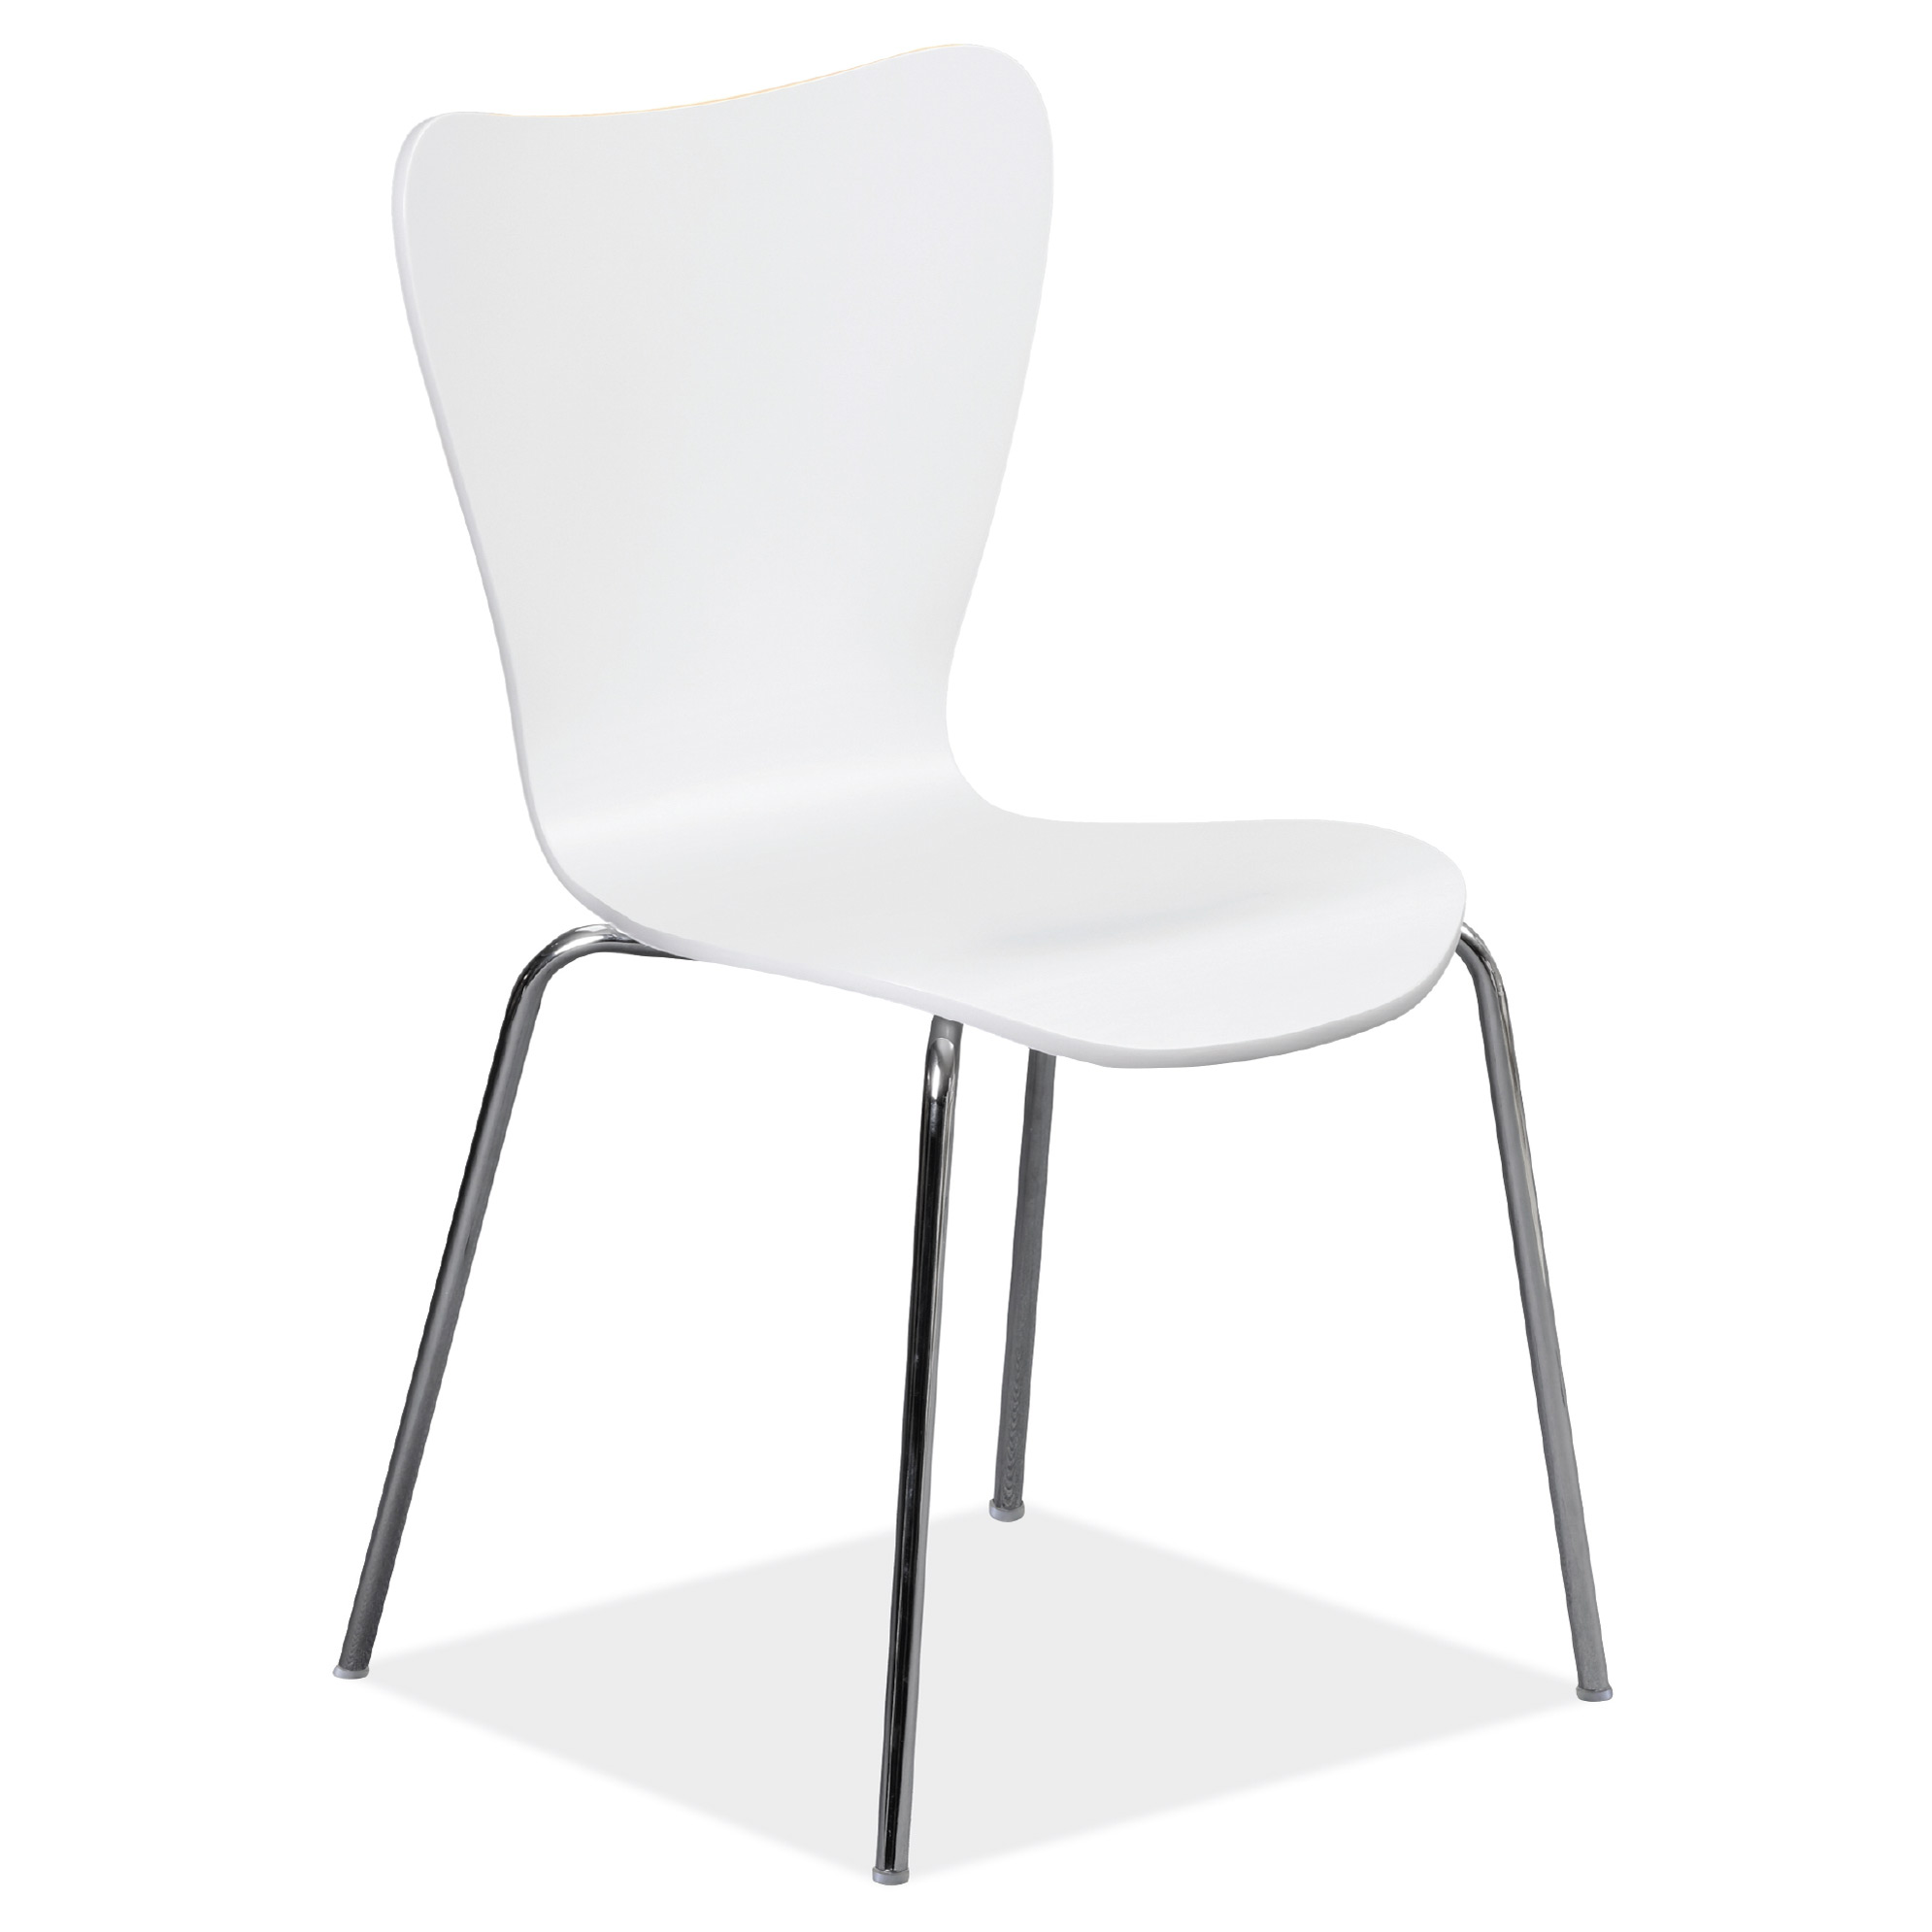 Office Furniture: Spinet Cafe Chair Rental - Office Furniture